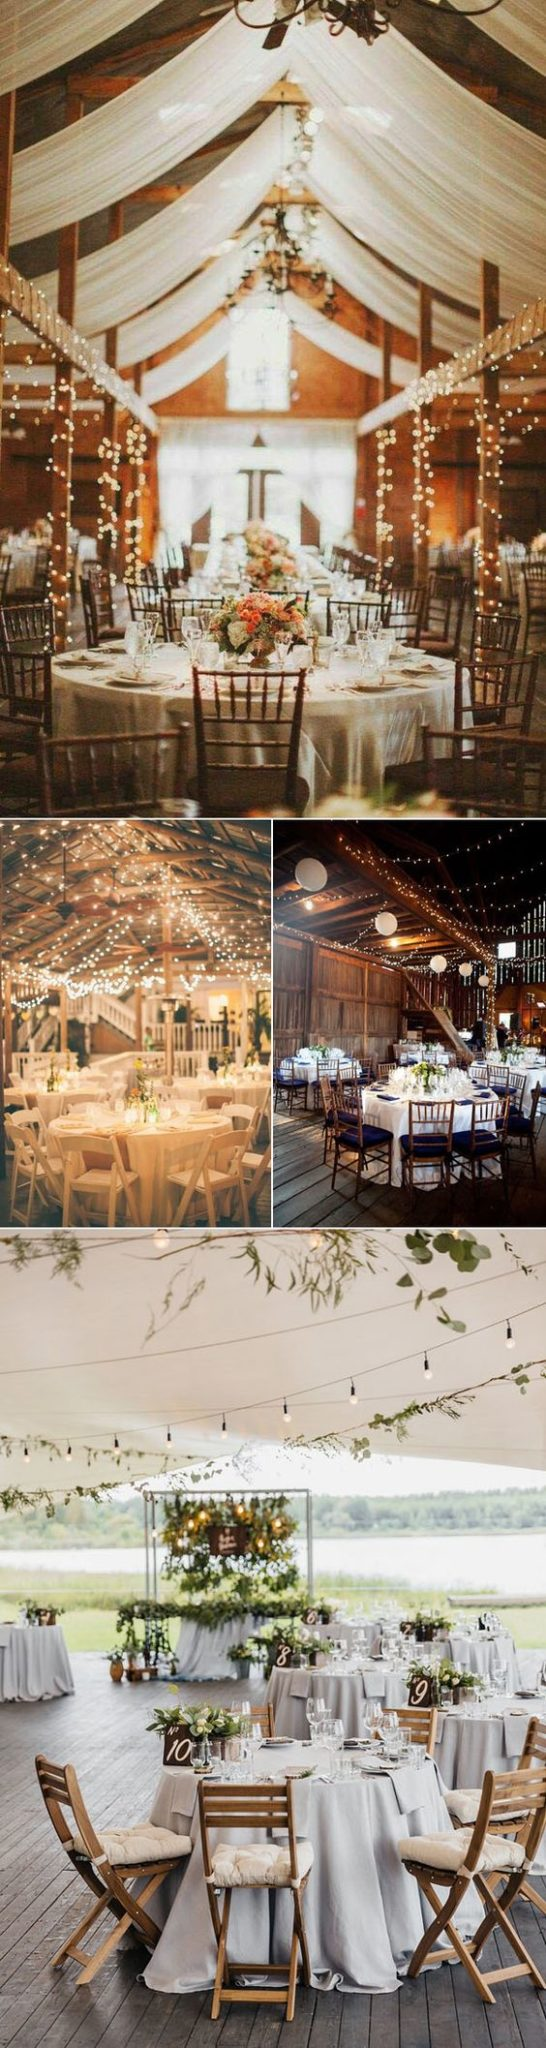 52 Rustic Wedding Decoration Ideas for Creating a Rustic-Style Wedding – Trendy  Wedding Ideas Blog